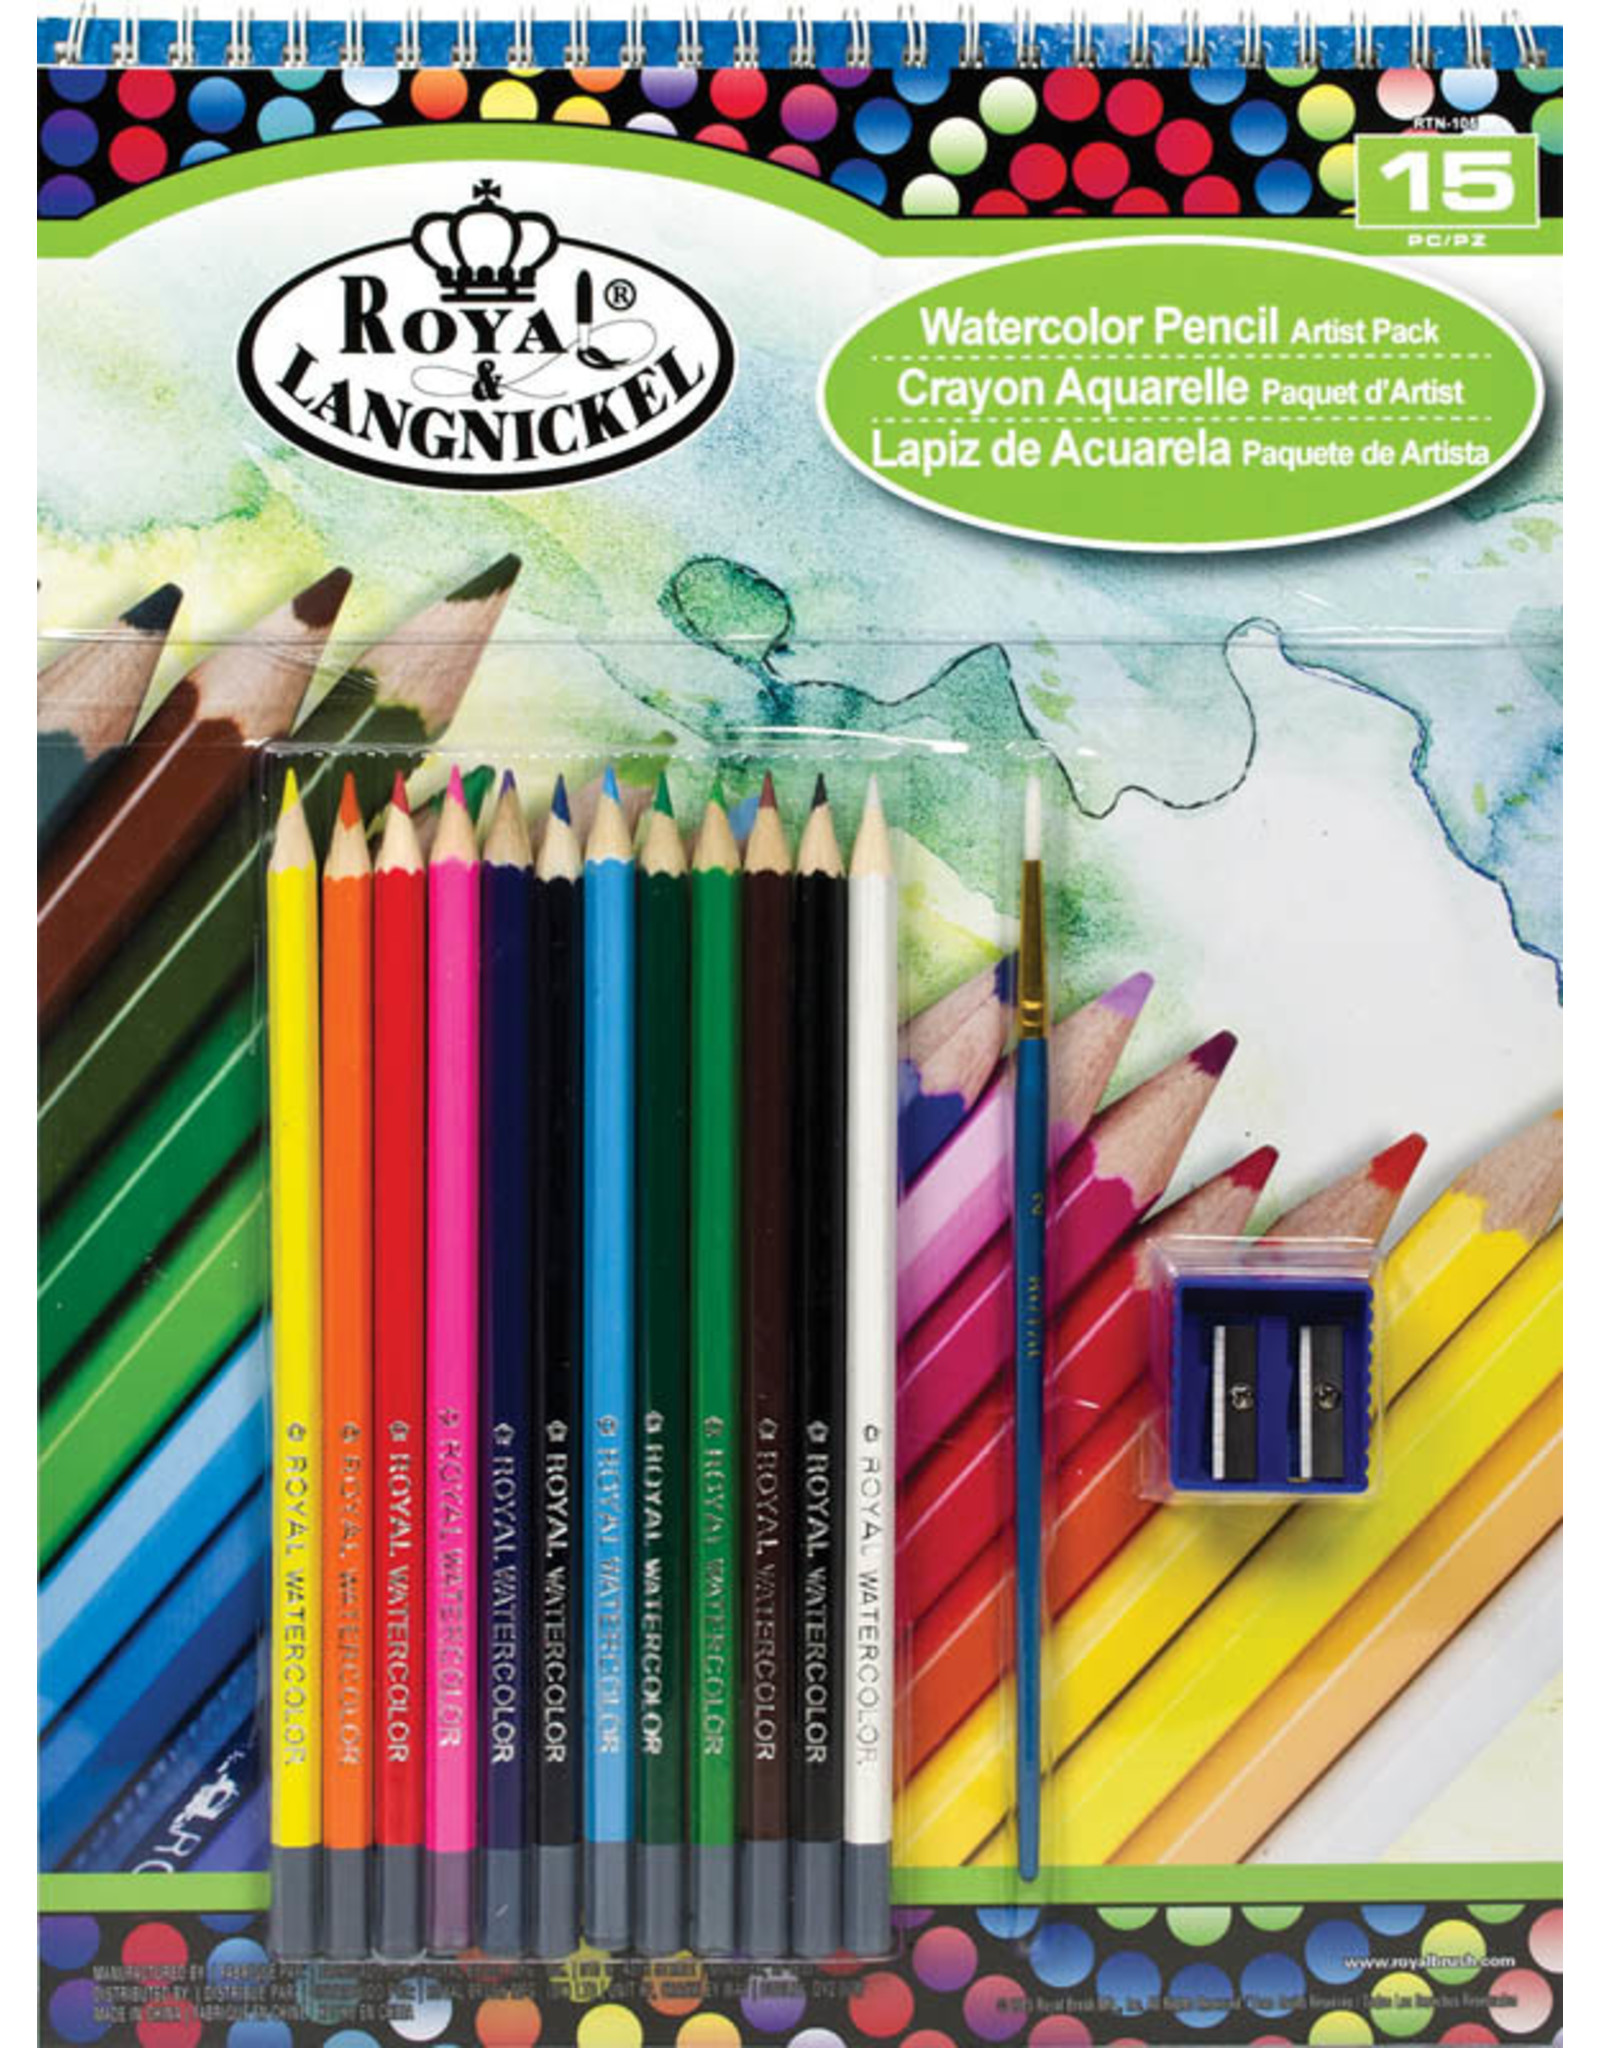 Royal & Langnickel Watercolor Pencil Artist Pack